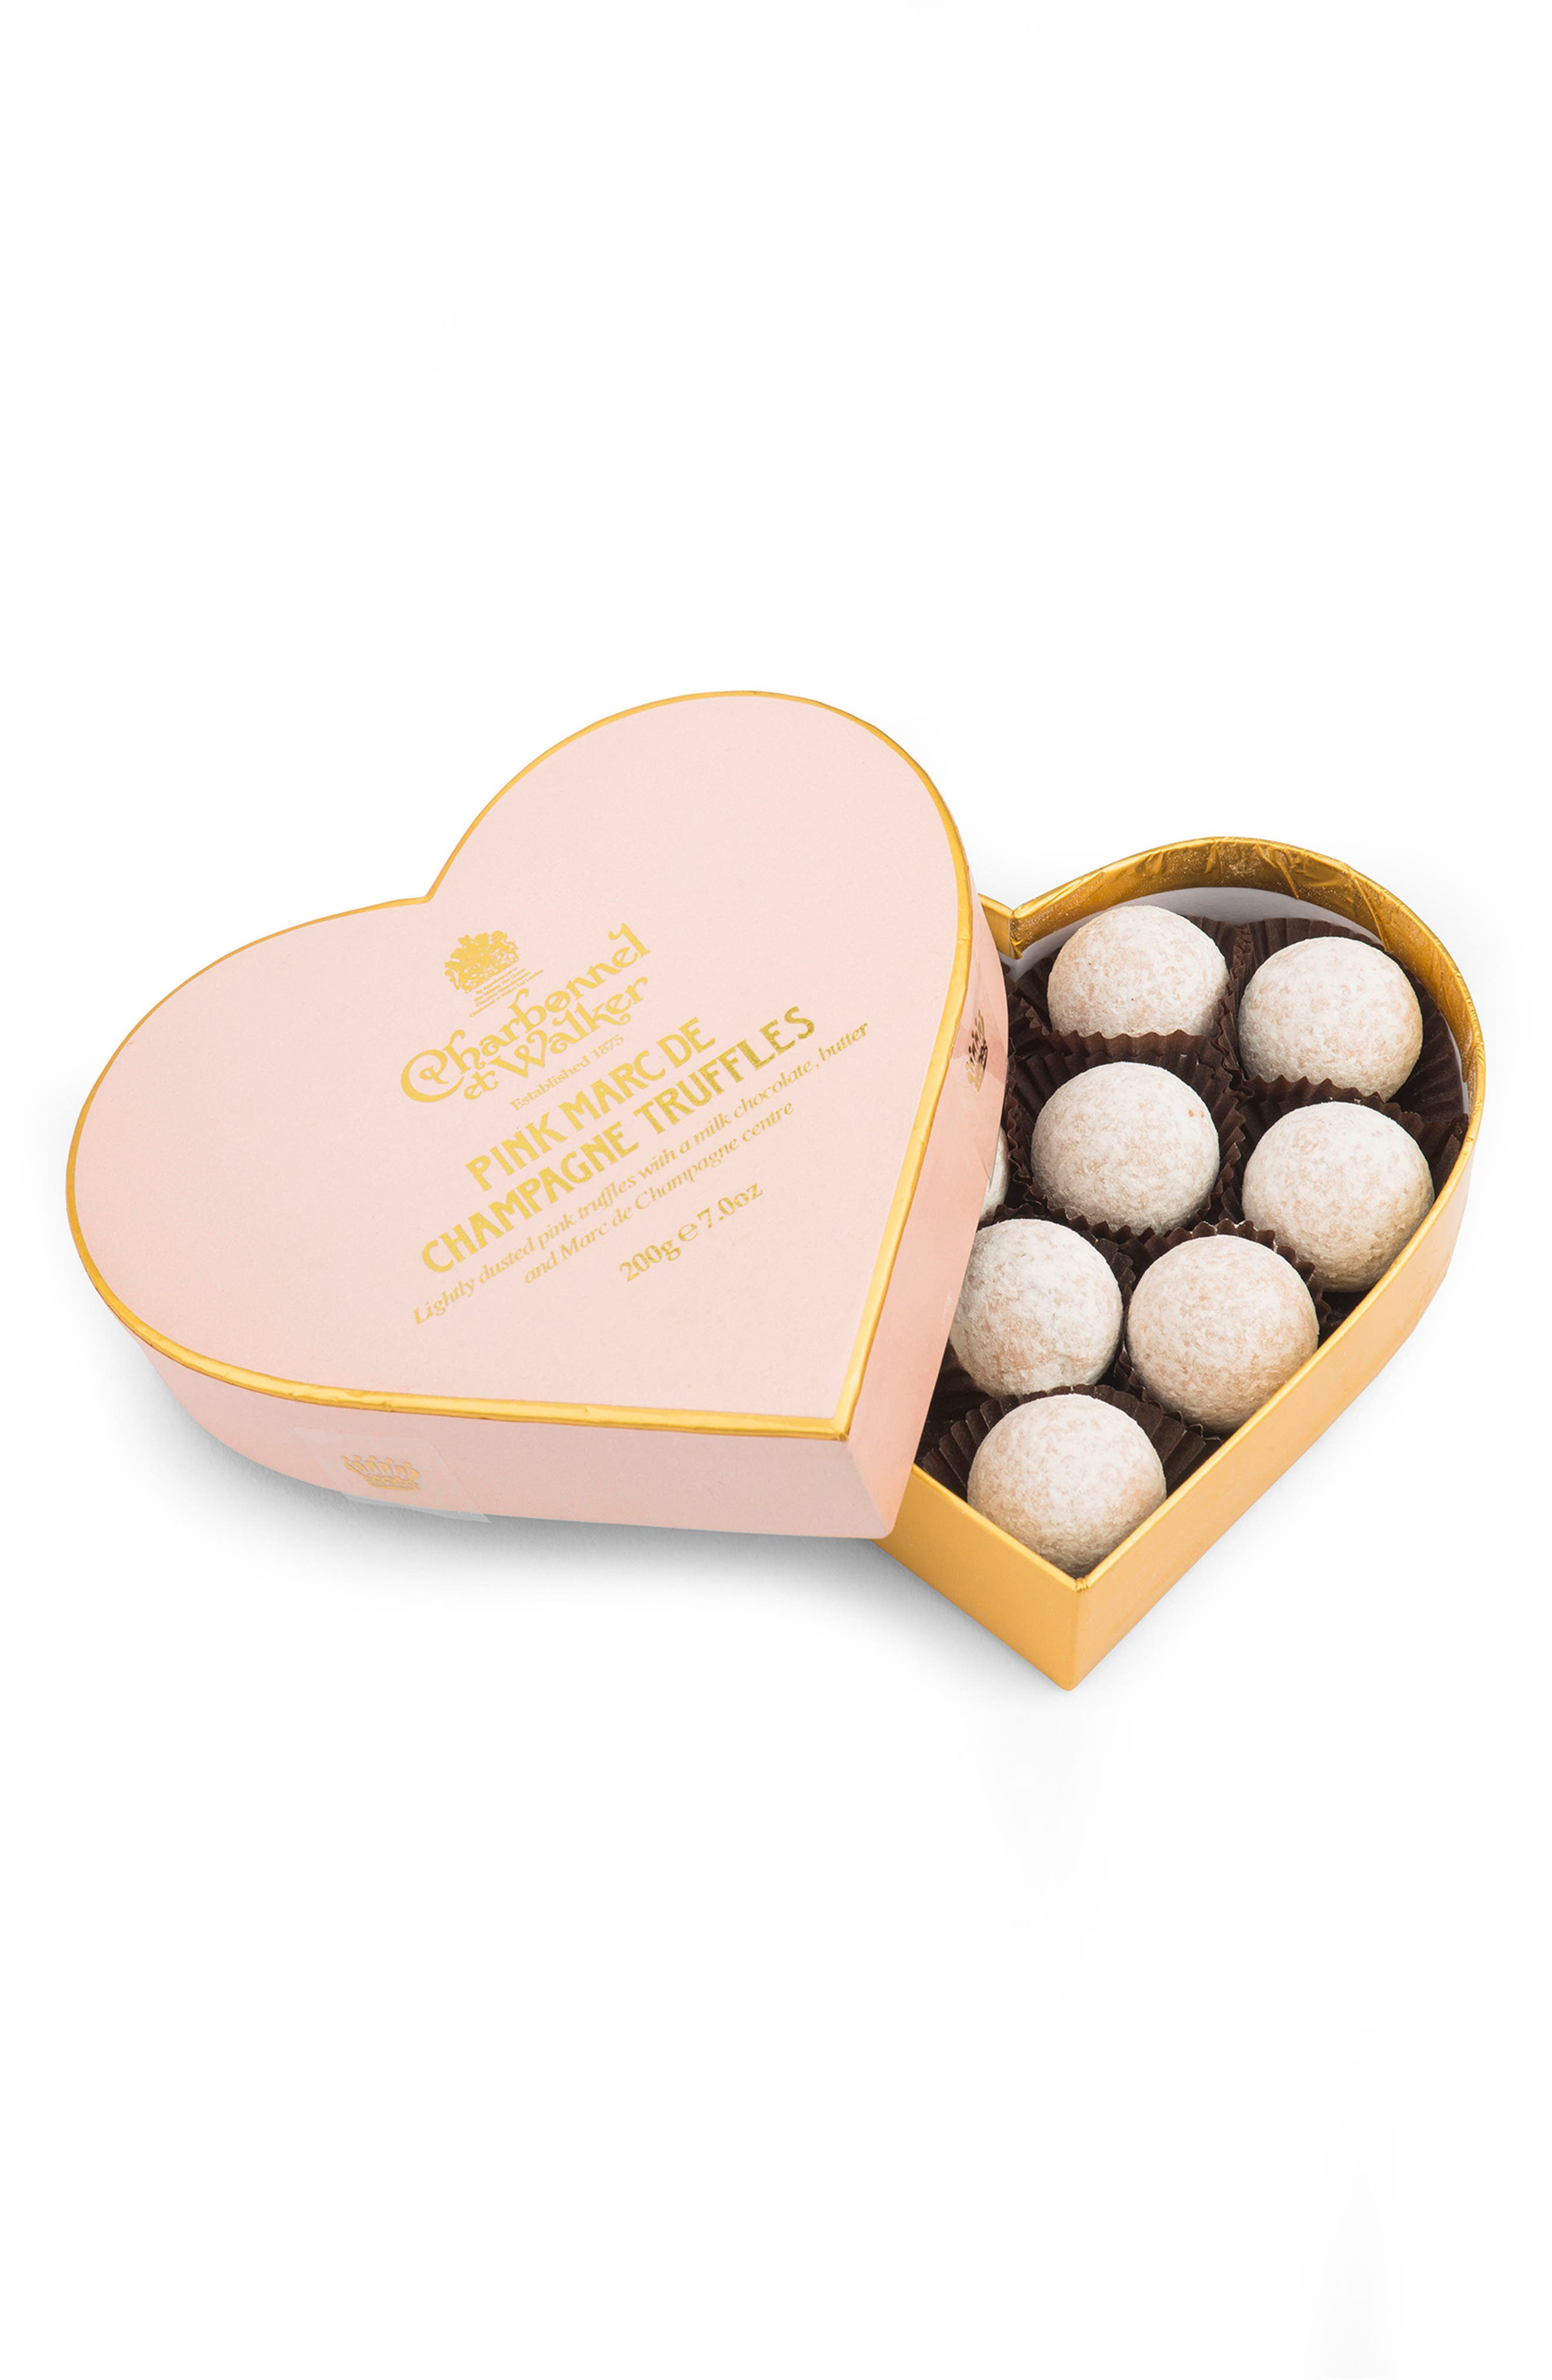 Chocolate Truffles in Heart Shaped Gift Box,                             Main thumbnail 1, color,                             Pink Champagne